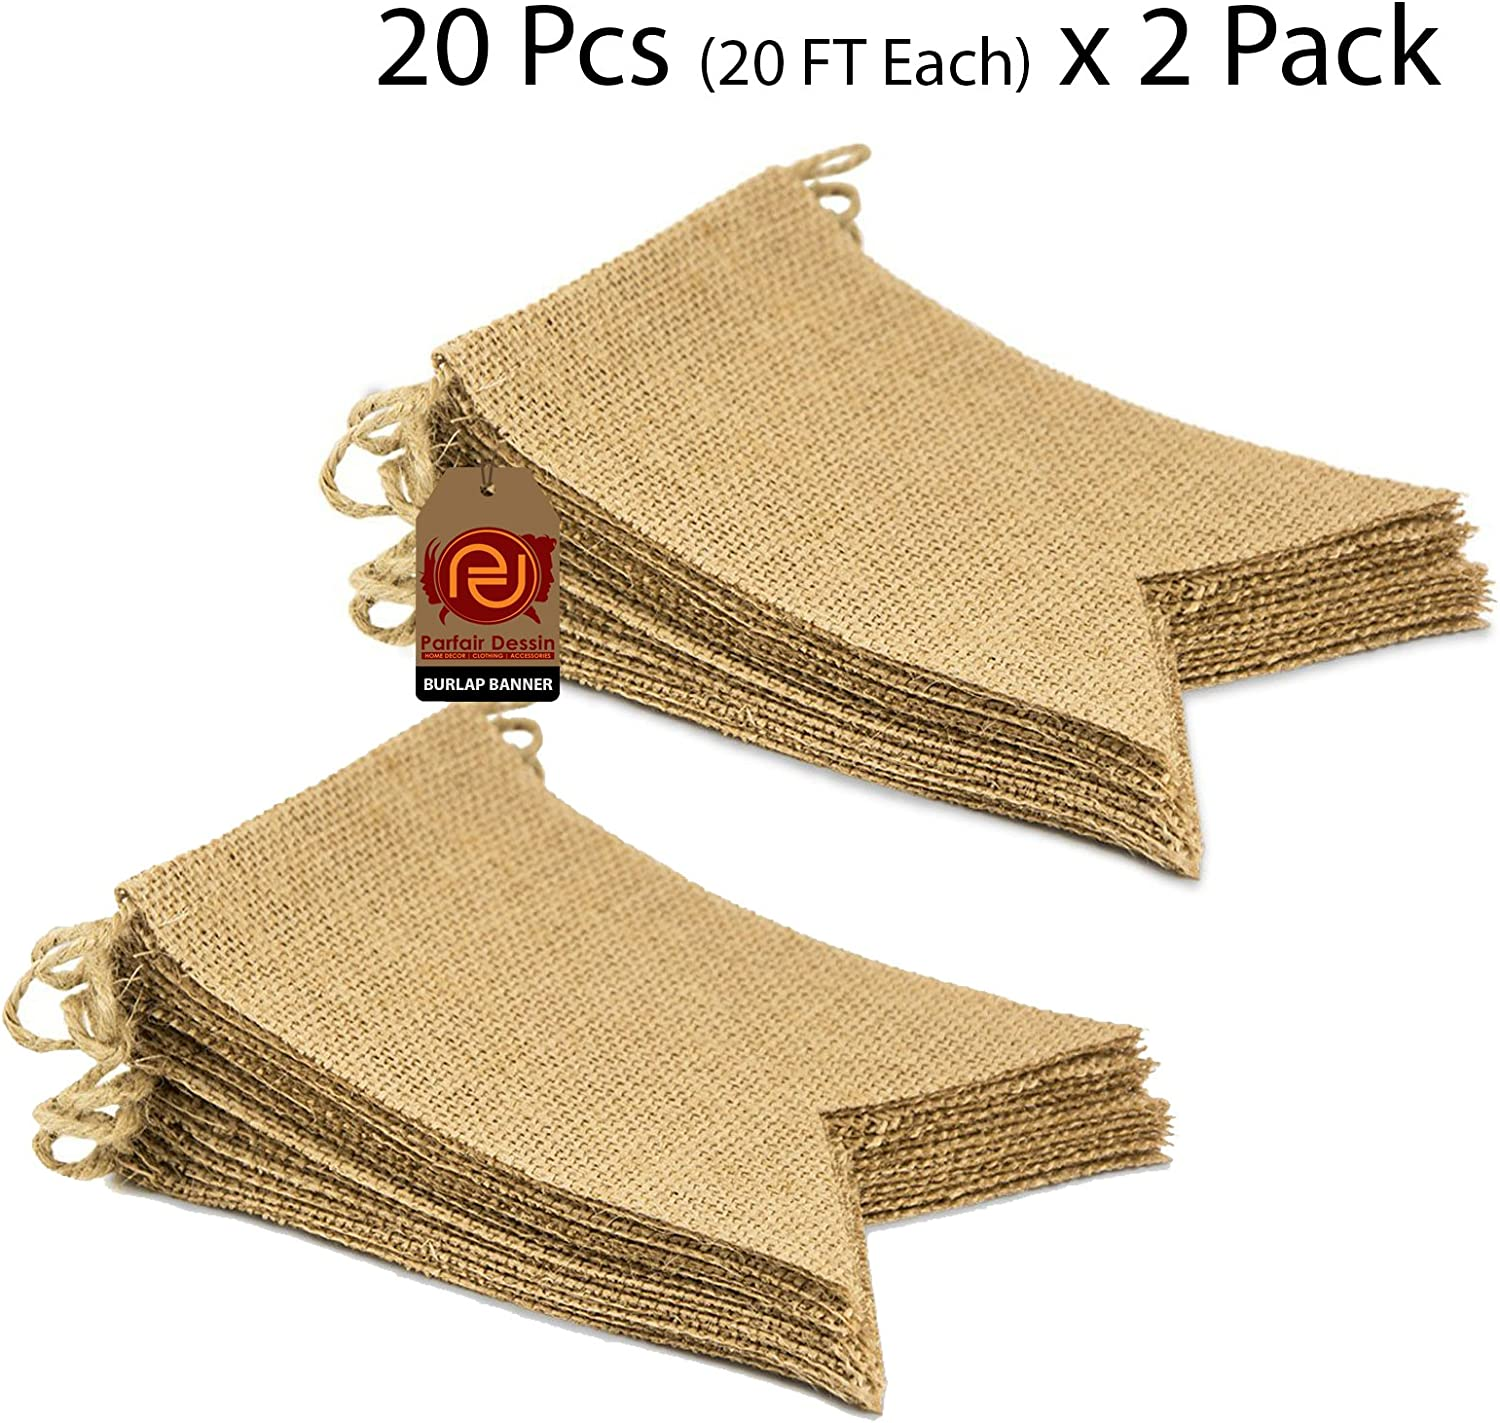 Parfair Dessin 40 Pcs Stiffened Swallowtail Flag Bunting Burlap Banner PreStringed No DIY Garland Decoration for Holidays Camping Halloween Christmas 40 Feet (Natural, Flag 1)